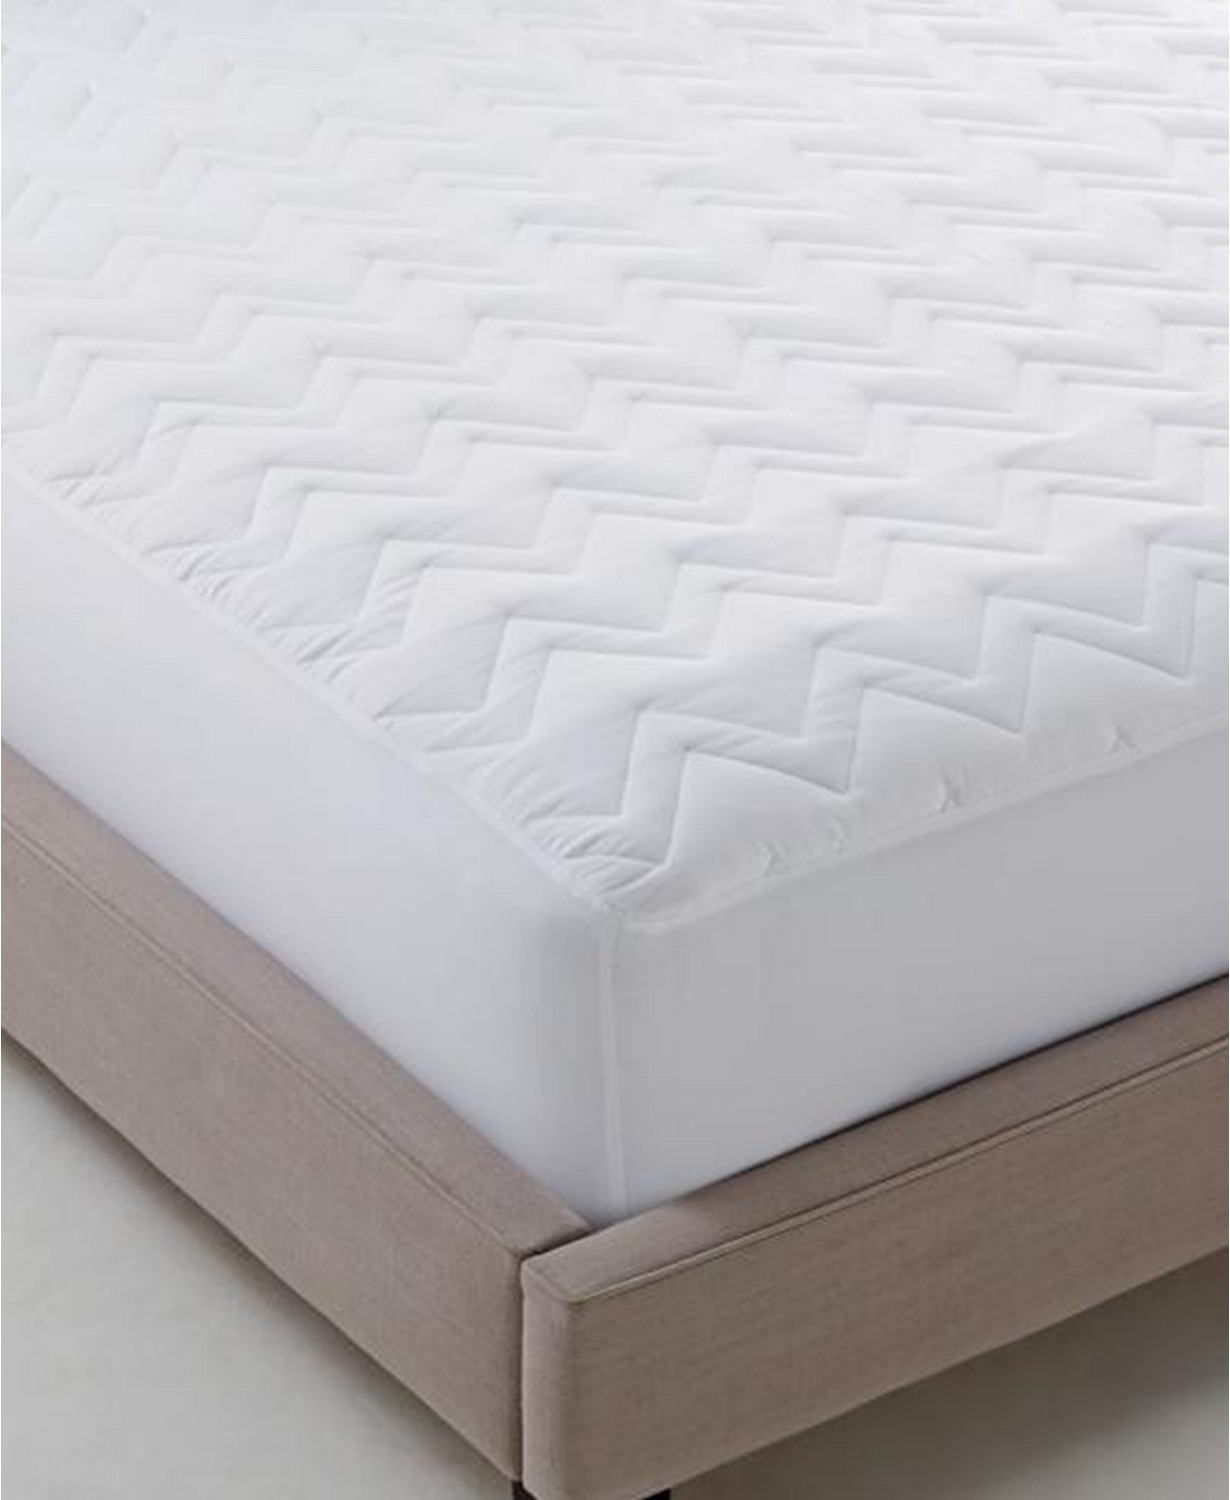 MACY'S : Martha Stewart Essentials Classic Twin Mattress Pad $9.99 (75% off)